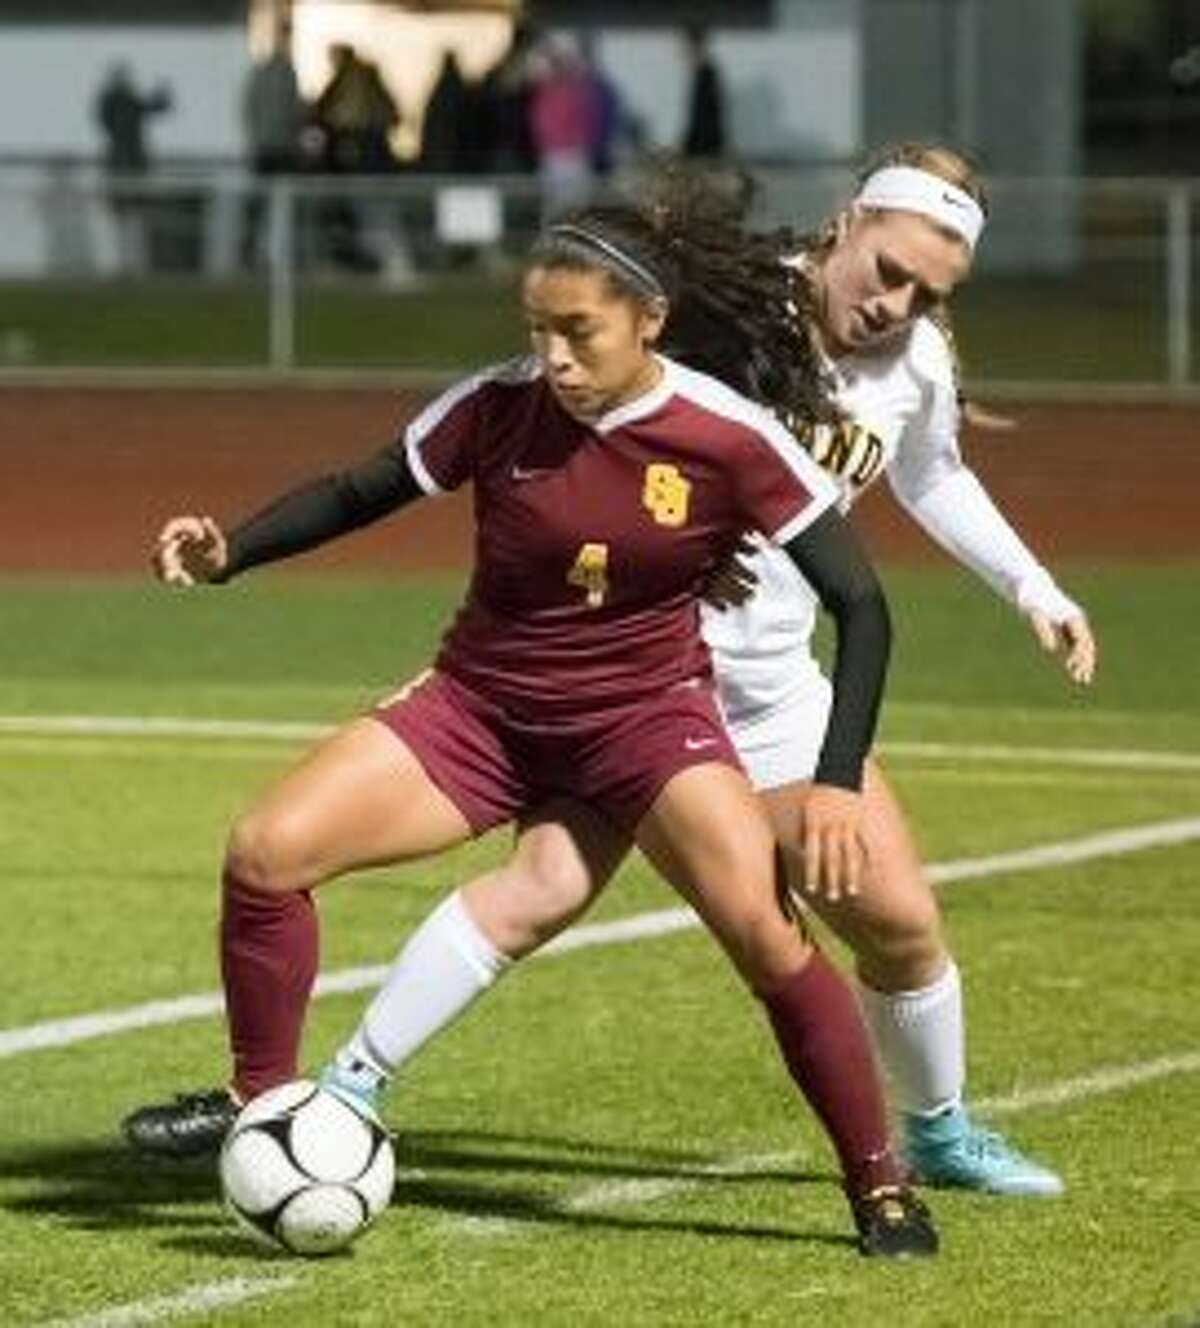 Jessica Mazo (4) looks to keep possession in the corner versus Daniel Hand. - David G. Whitham photos